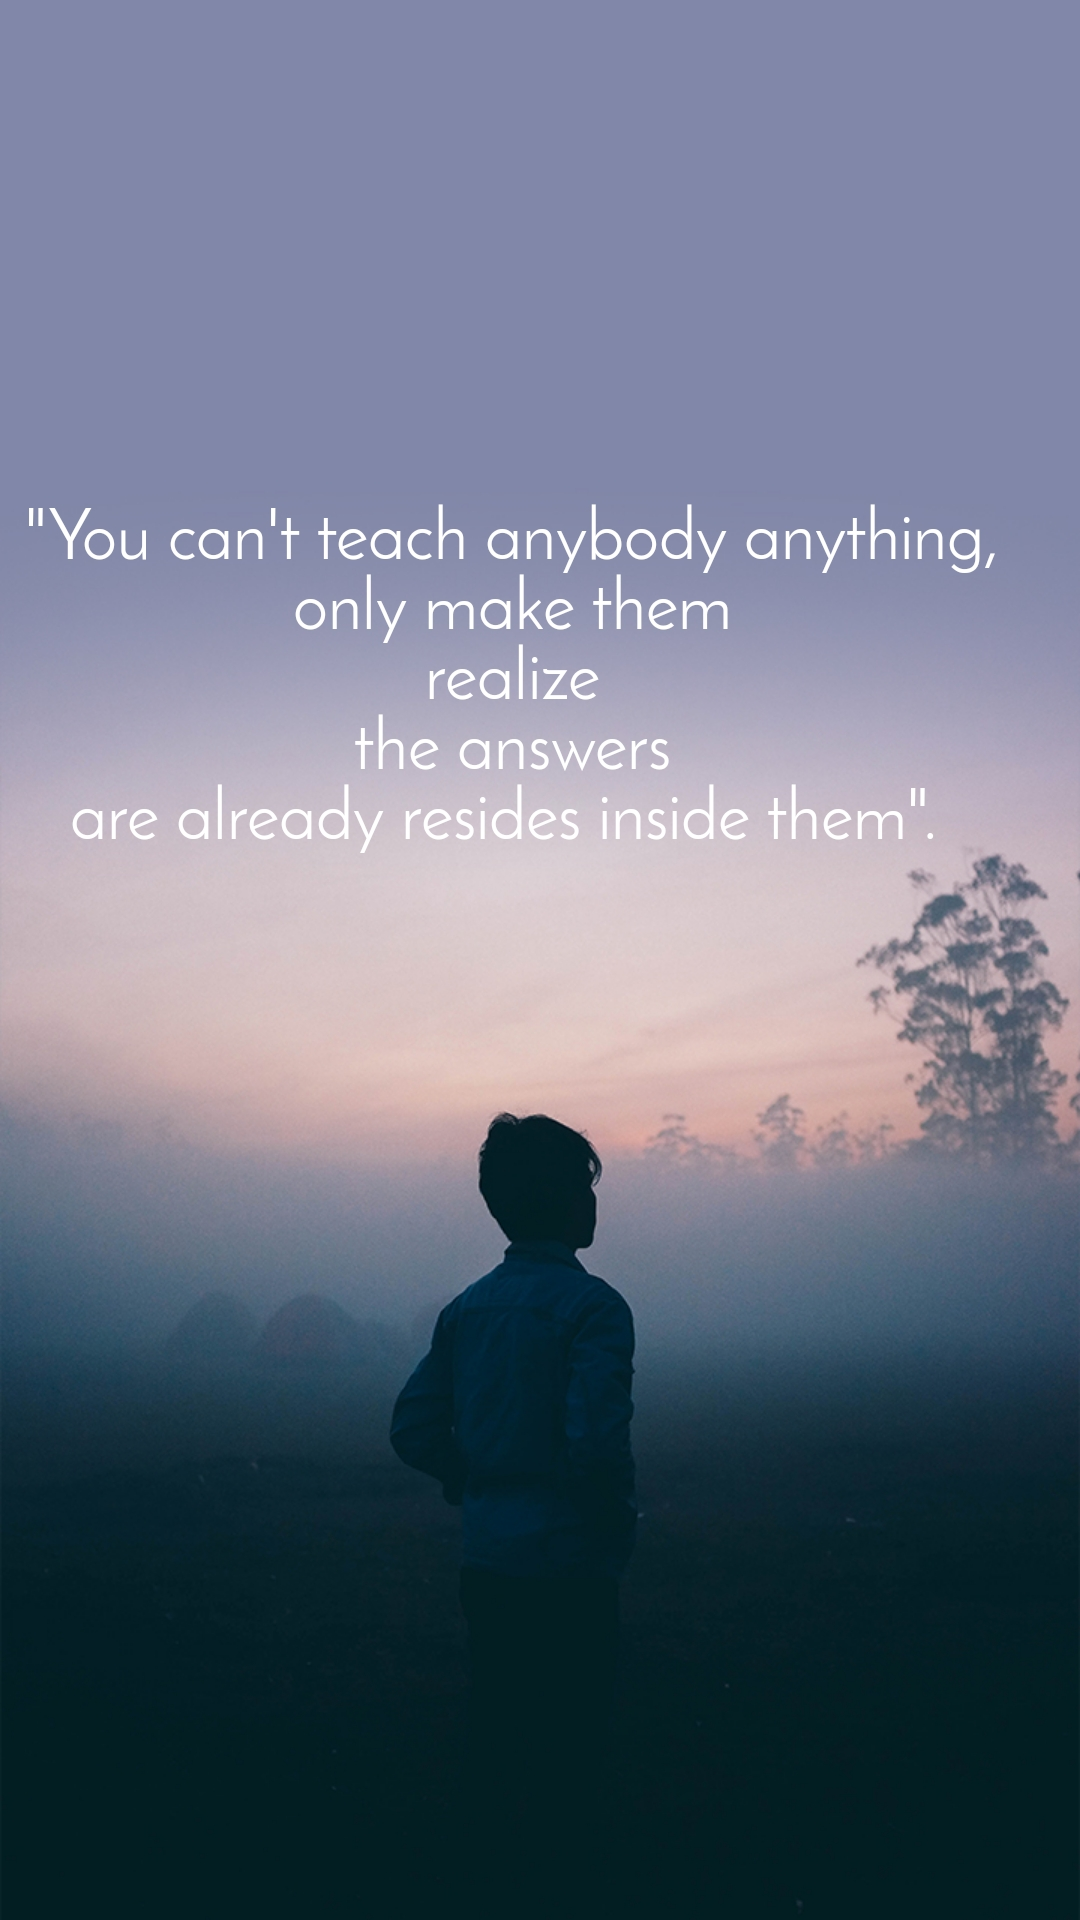 """You can't teach anybody anything, only make them realize the answers are already resides inside them""."